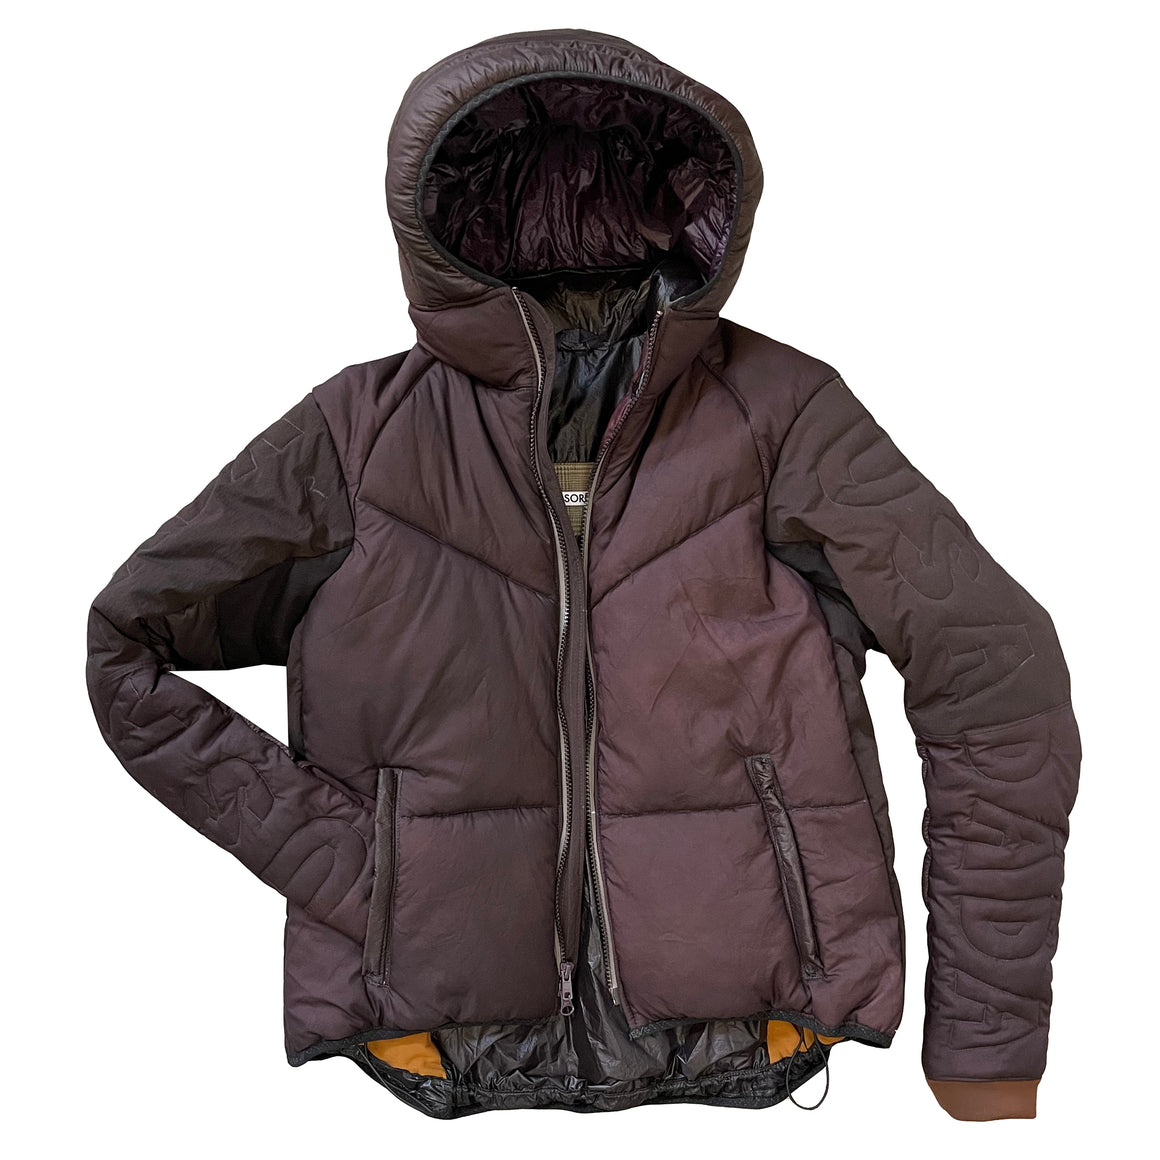 USADADA™ PUFF JACKET